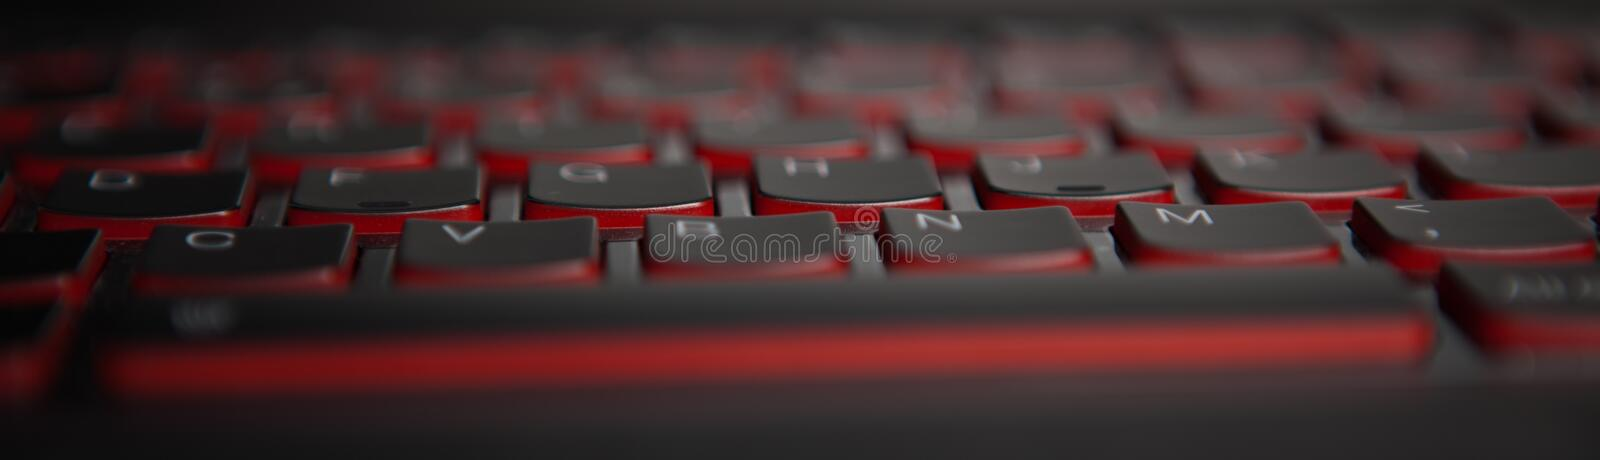 Keyboard texture. Macro keyboard texture dark royalty free stock photos